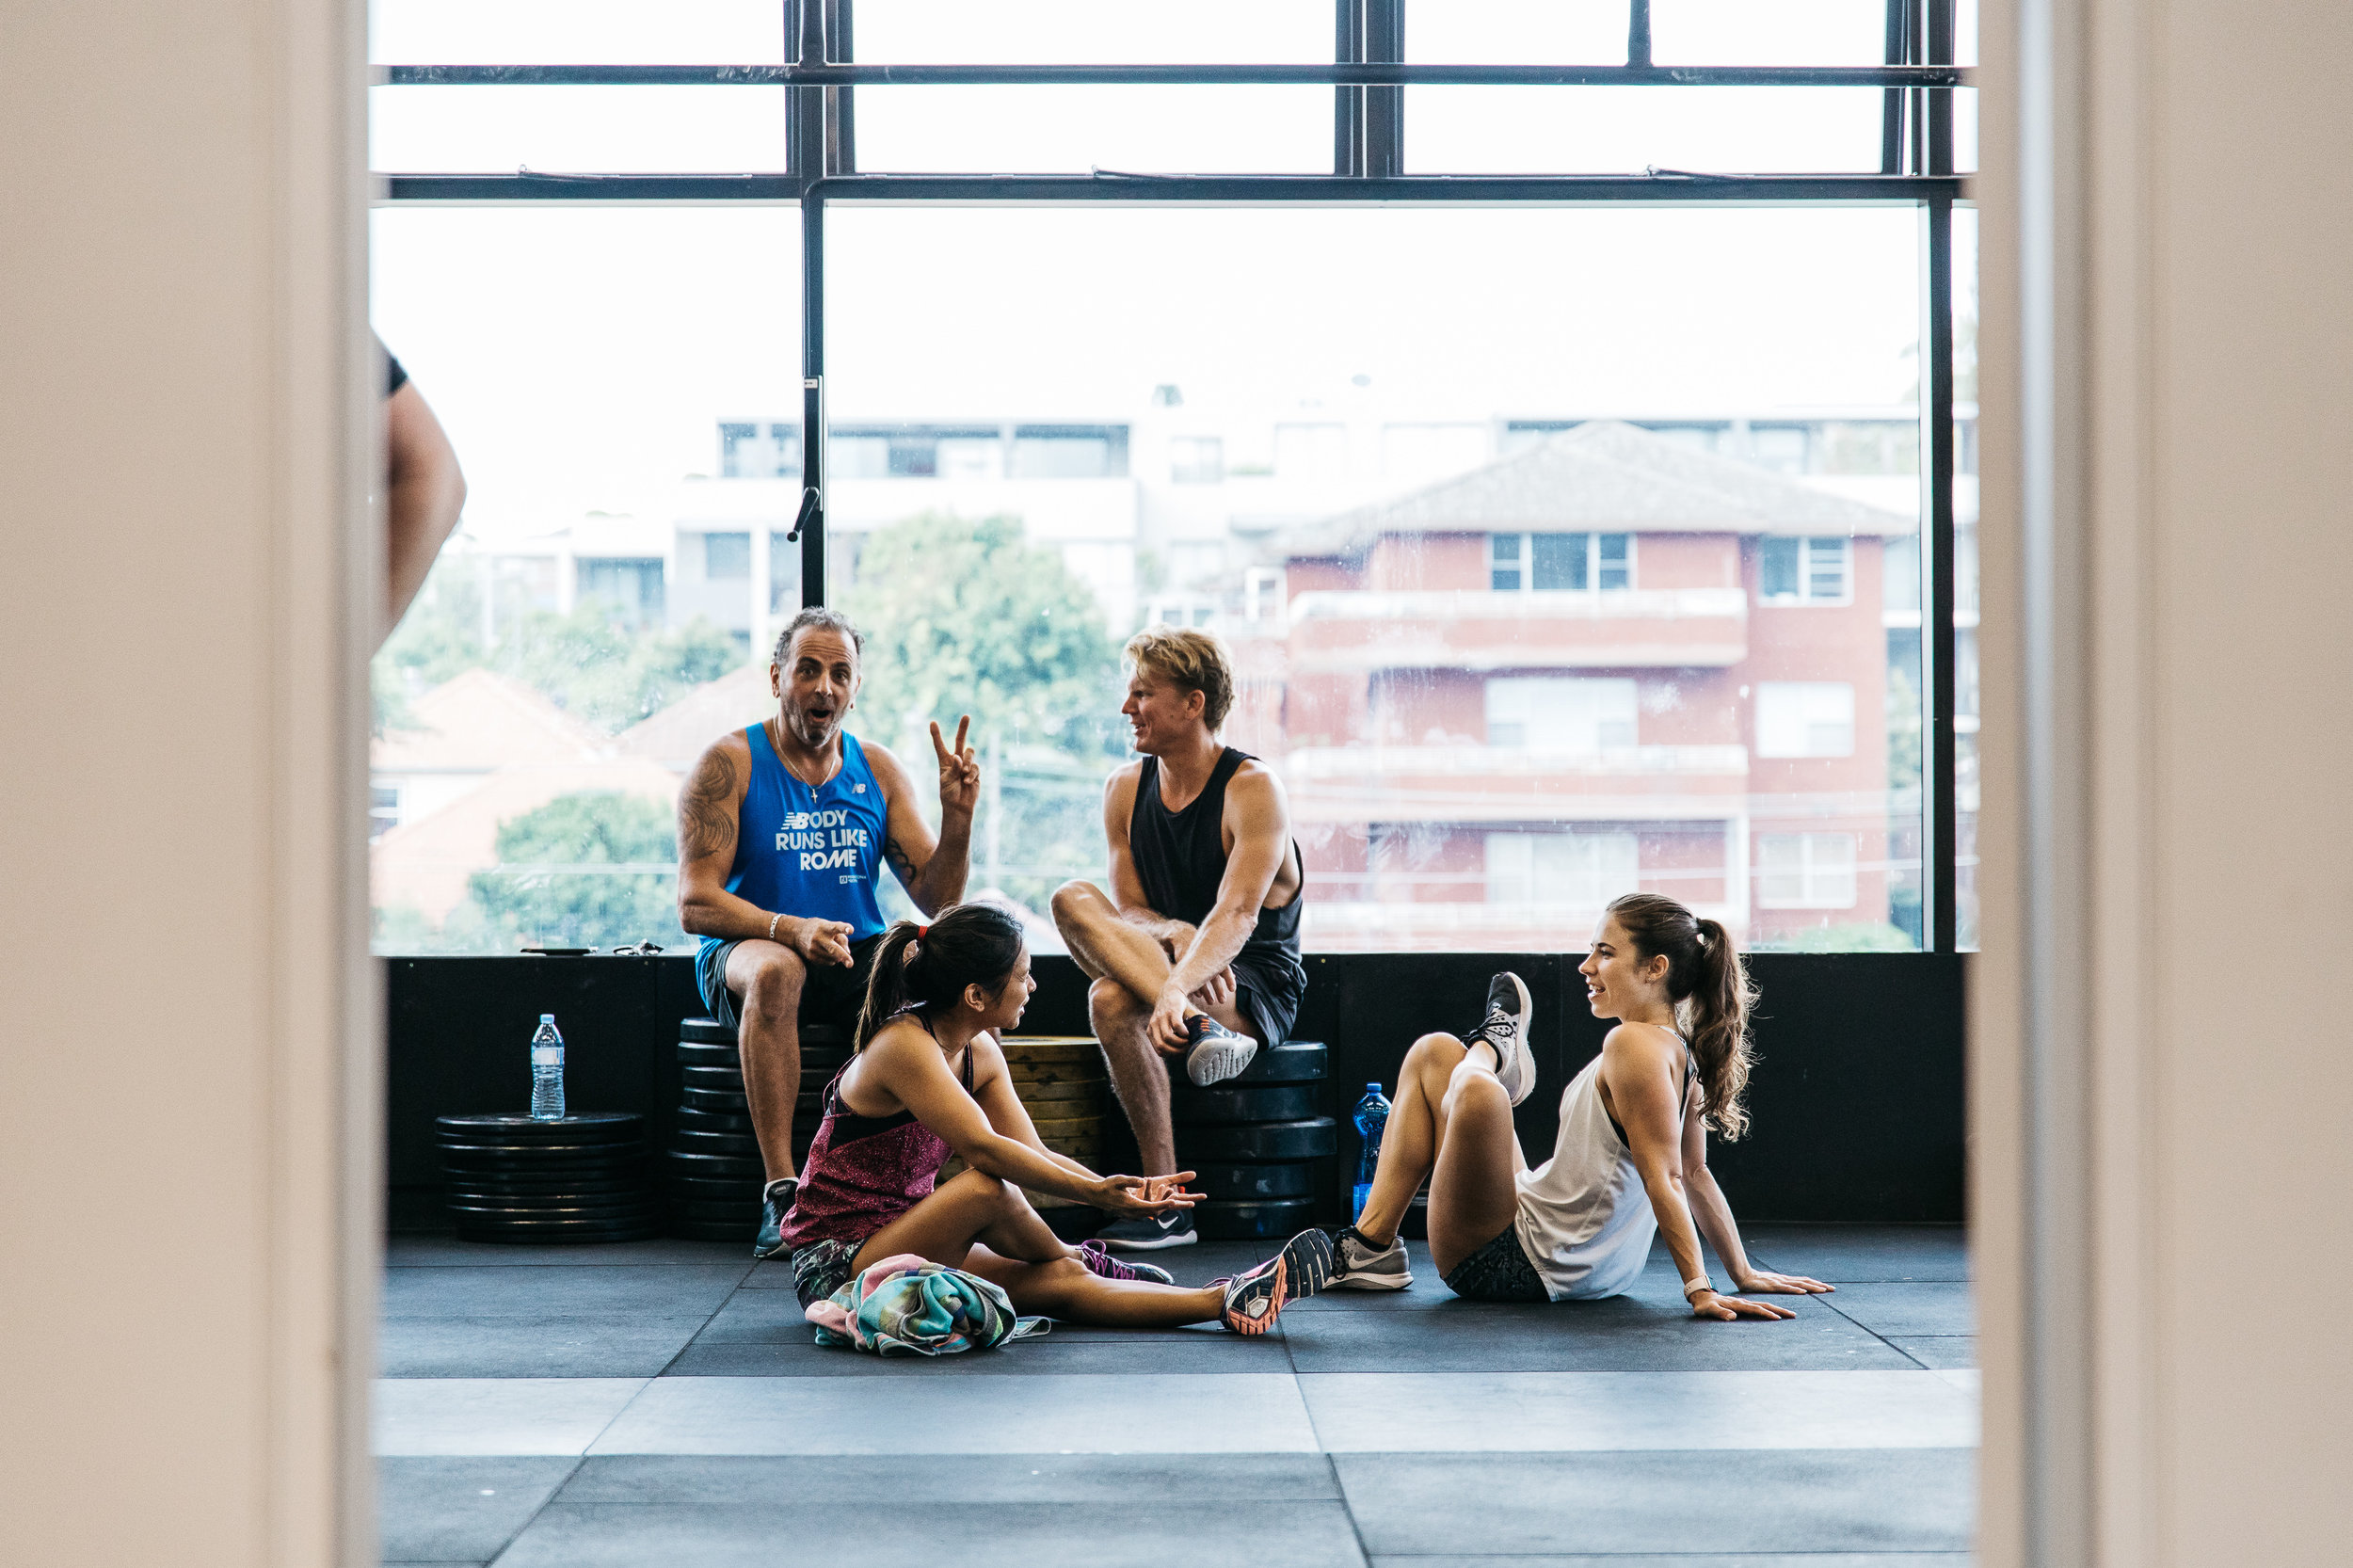 Start now! - If you are looking for a fun, friendly and results driven community of people to help you achieve your health and fitness goals in Sydney, CrossFit Coogee 2034 is the place for you.Enquire now.